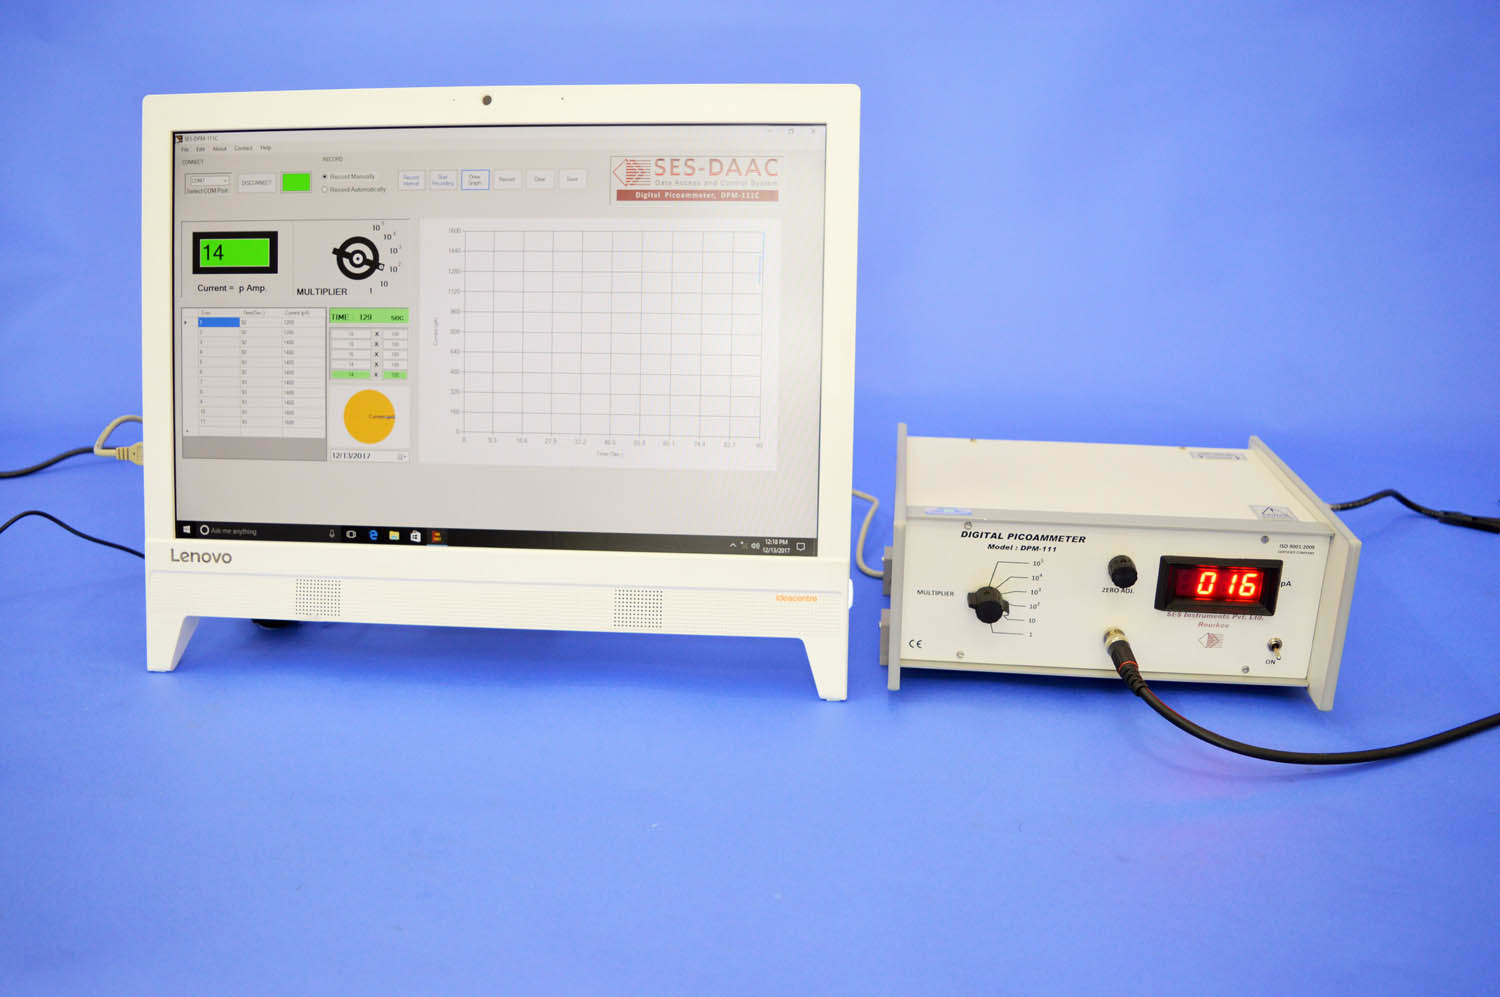 Digital Picoammeter, Model DPM-111-C2